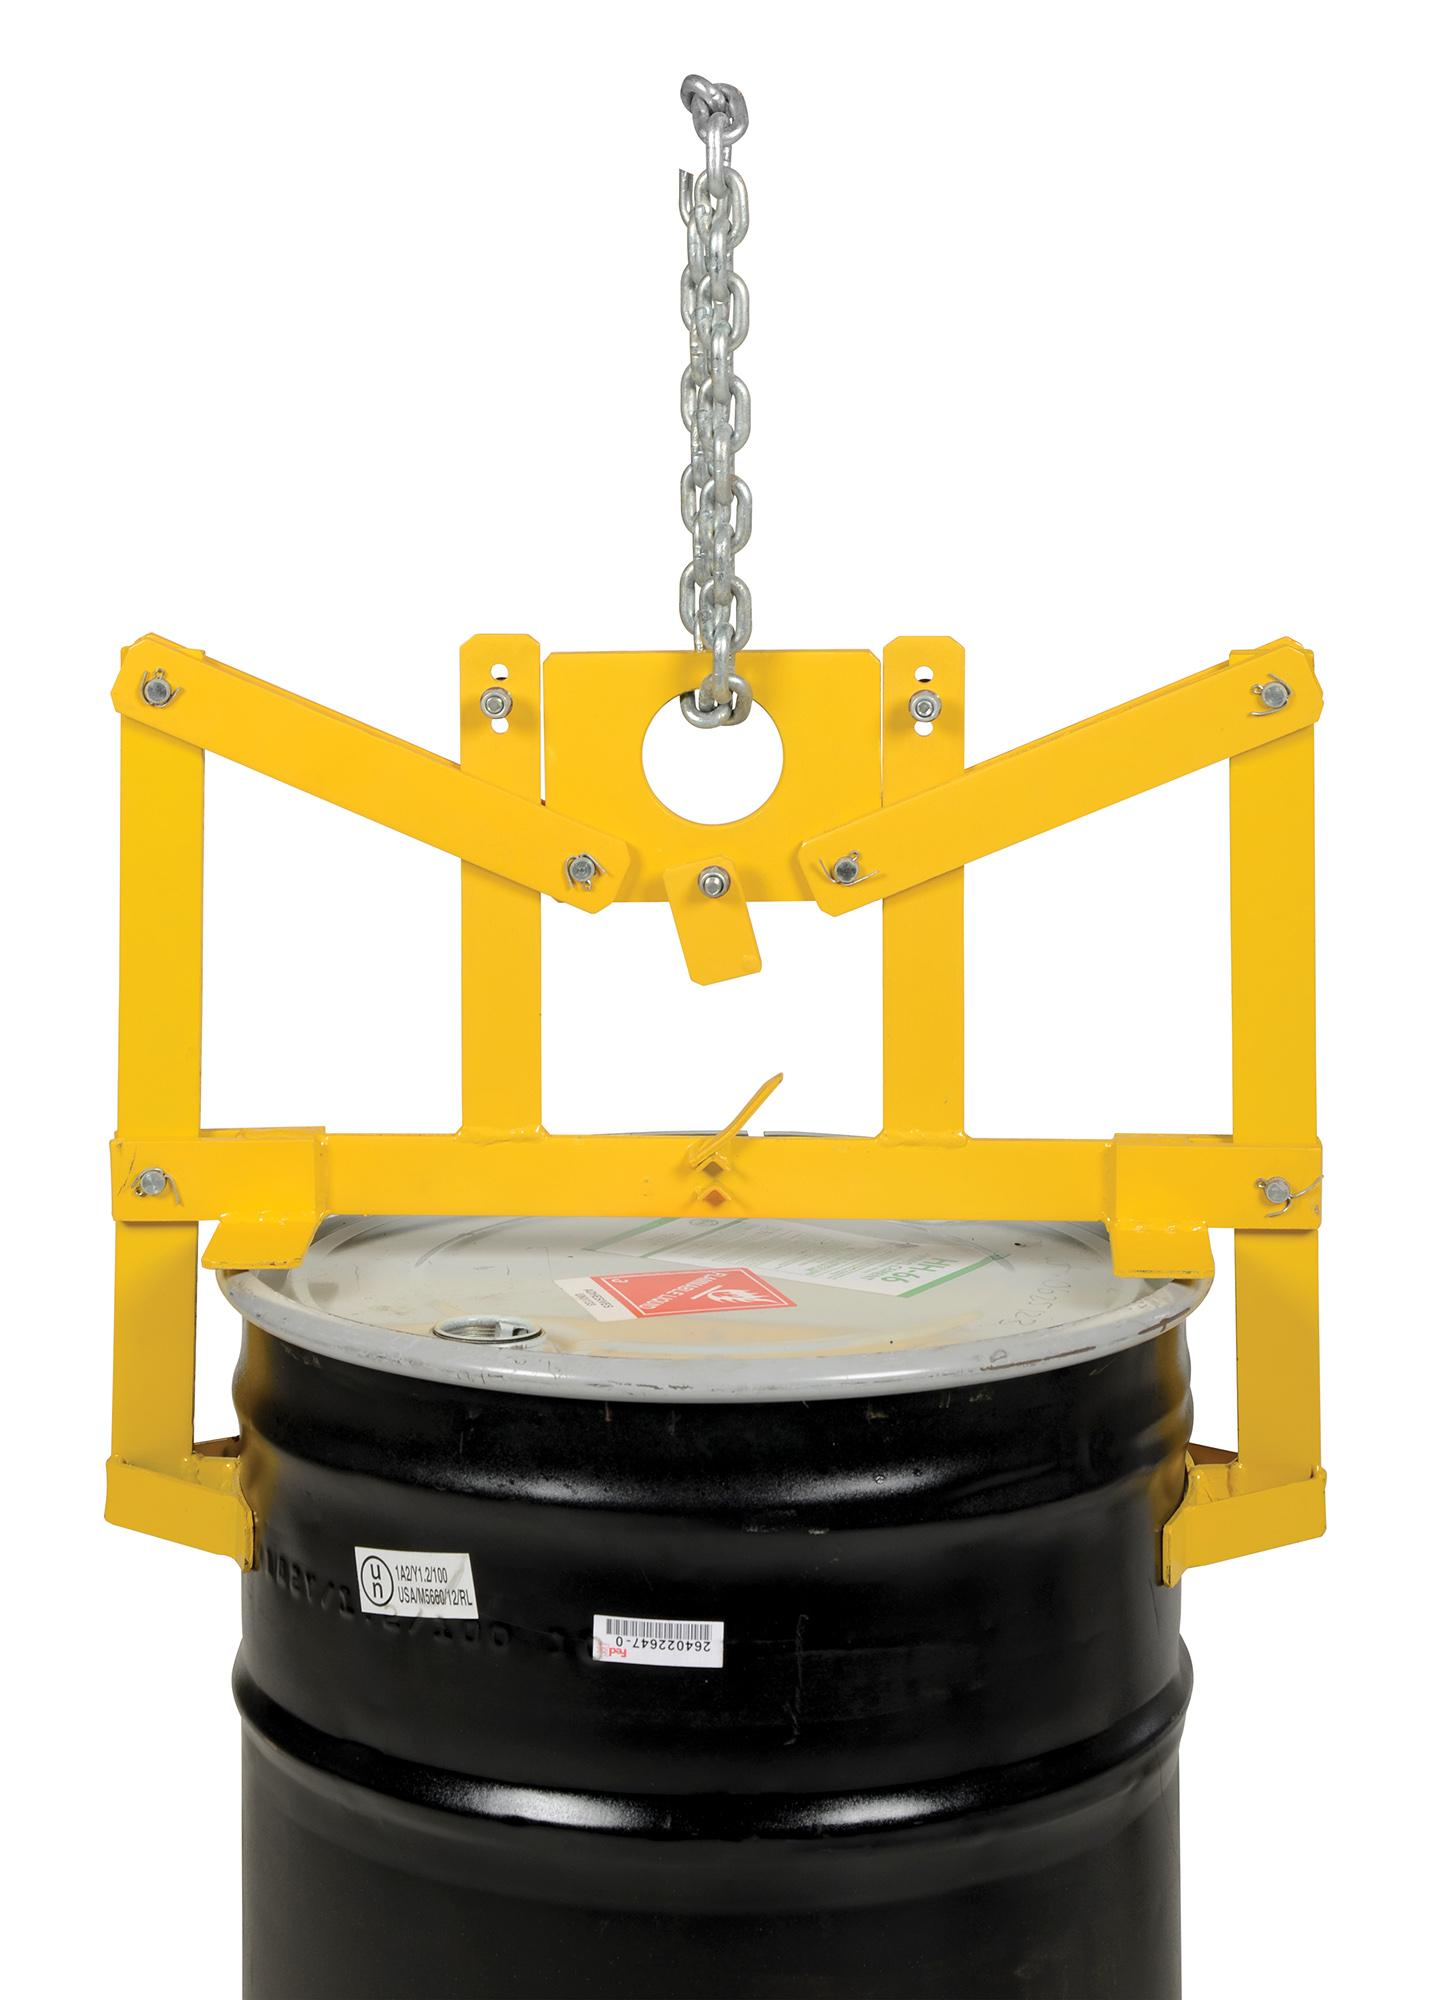 Vestil Vertical Drum Lifter Model No. VDL-22.5